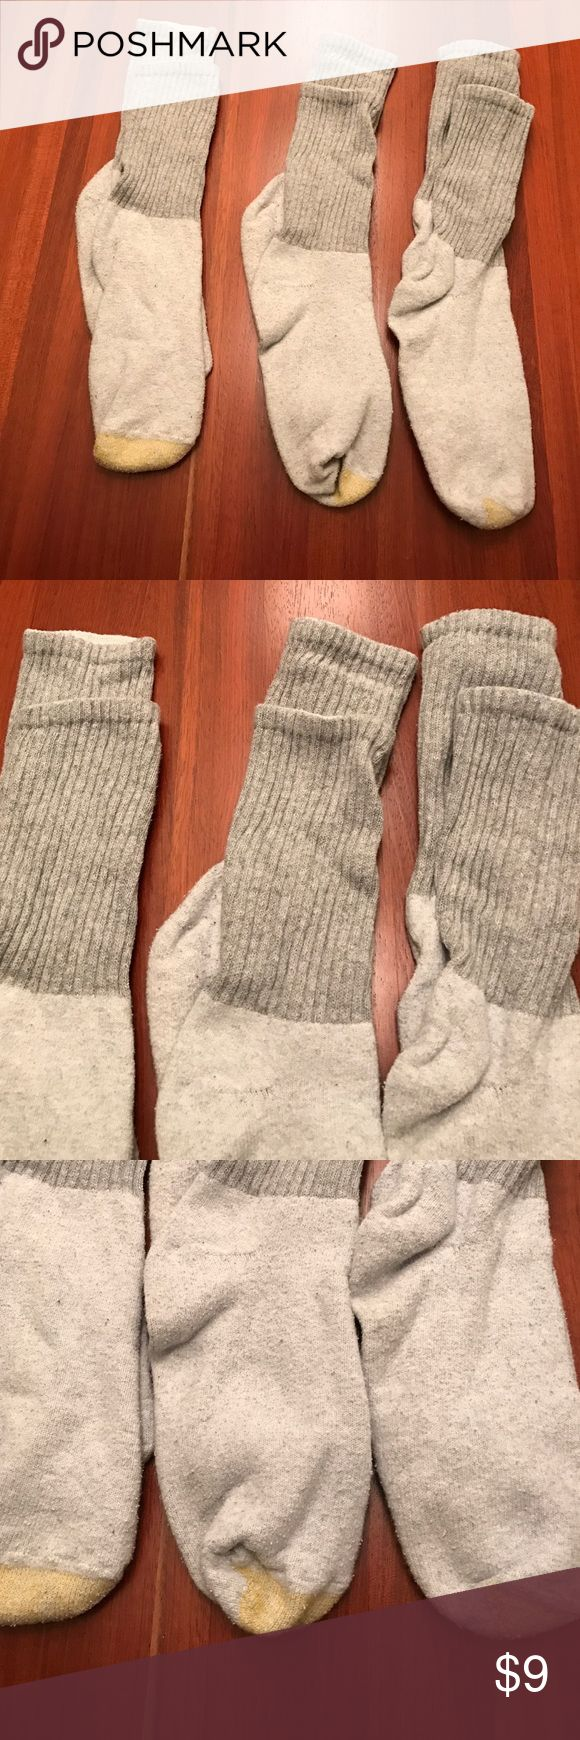 3 pairs of Gold Toe  socks (lot) Like new❗️Bought them & were a little too short for husband. Lost receipt, couldn't return. All in EUC Worn only once & washed. No holes, Rips,Stains, or defects. 100%Cotton Gold Toe Underwear & Socks Athletic Socks